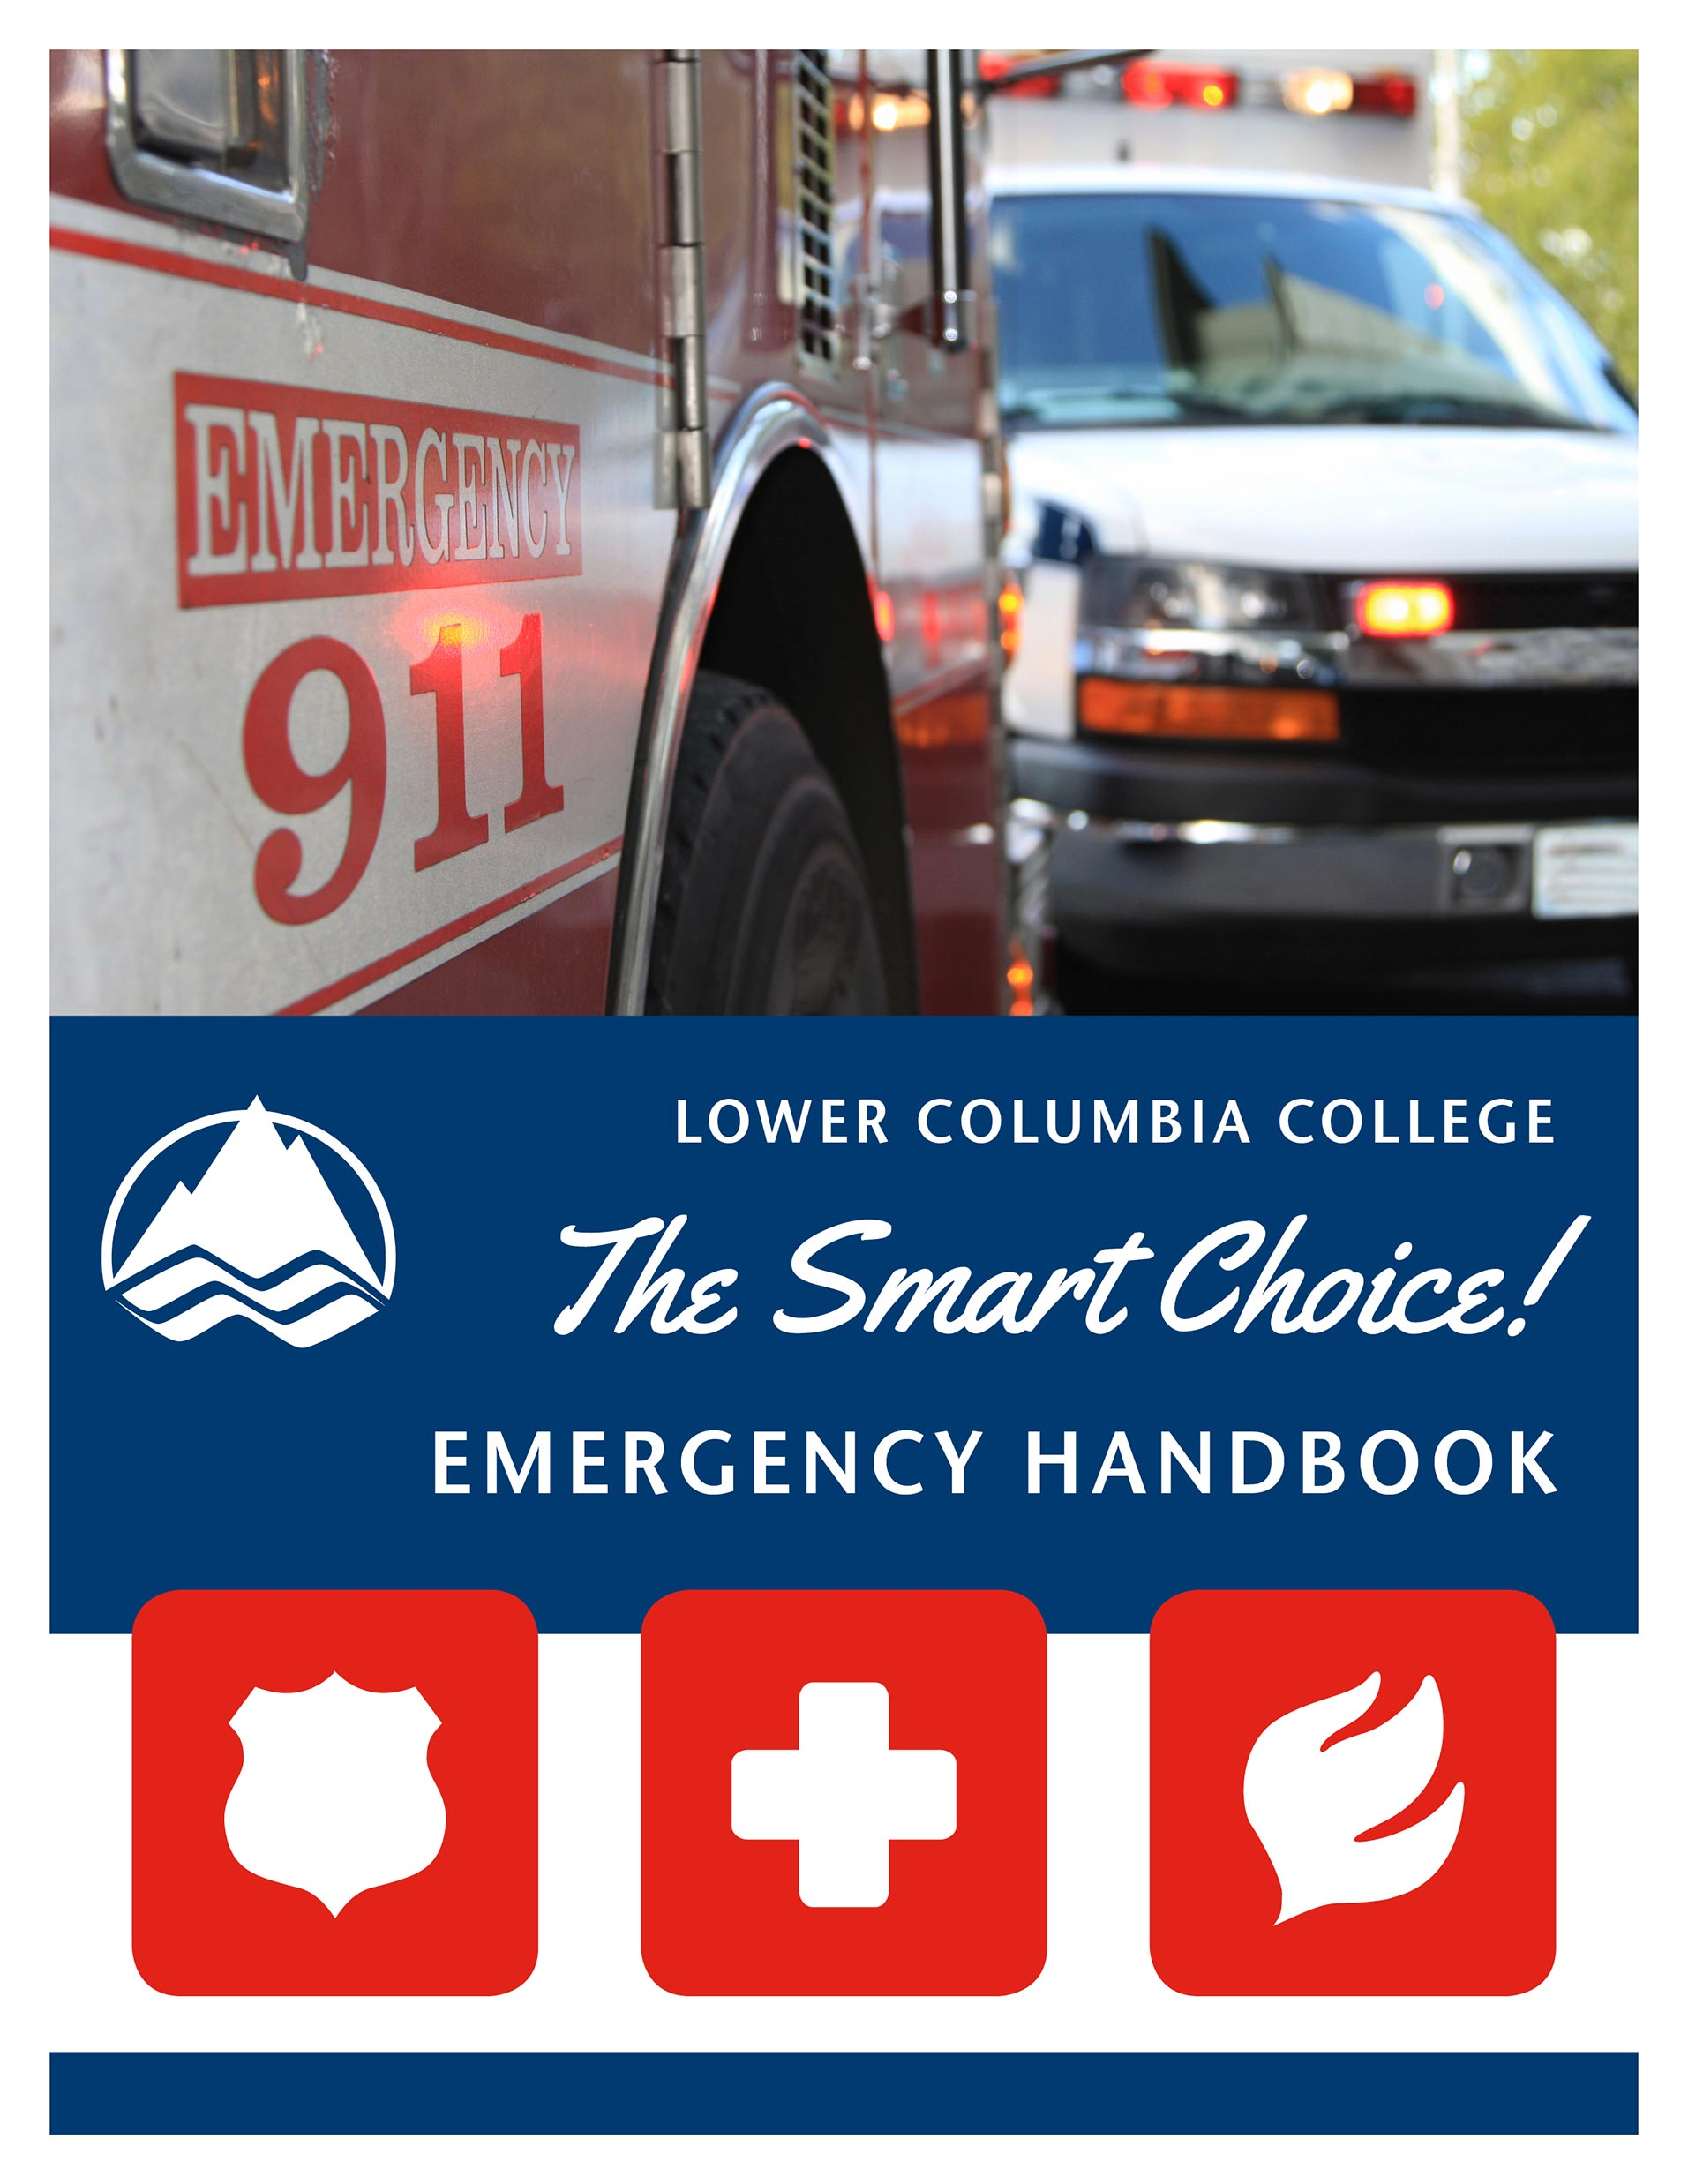 LCC Emergency Handbook